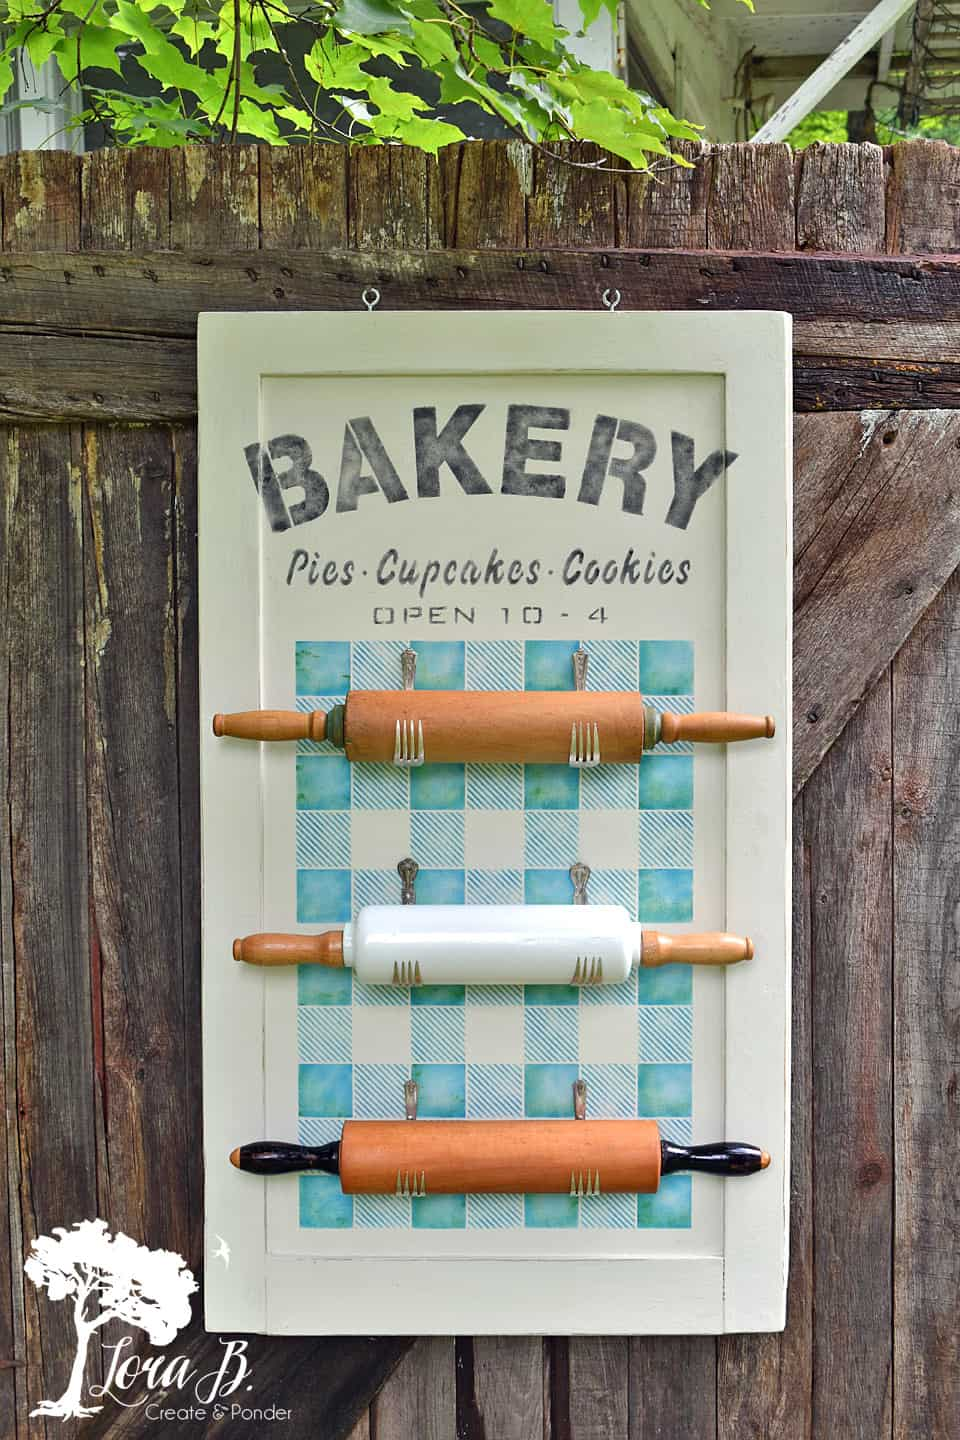 Spectacular Stenciled Bakery Sign and Rolling Pin Holder